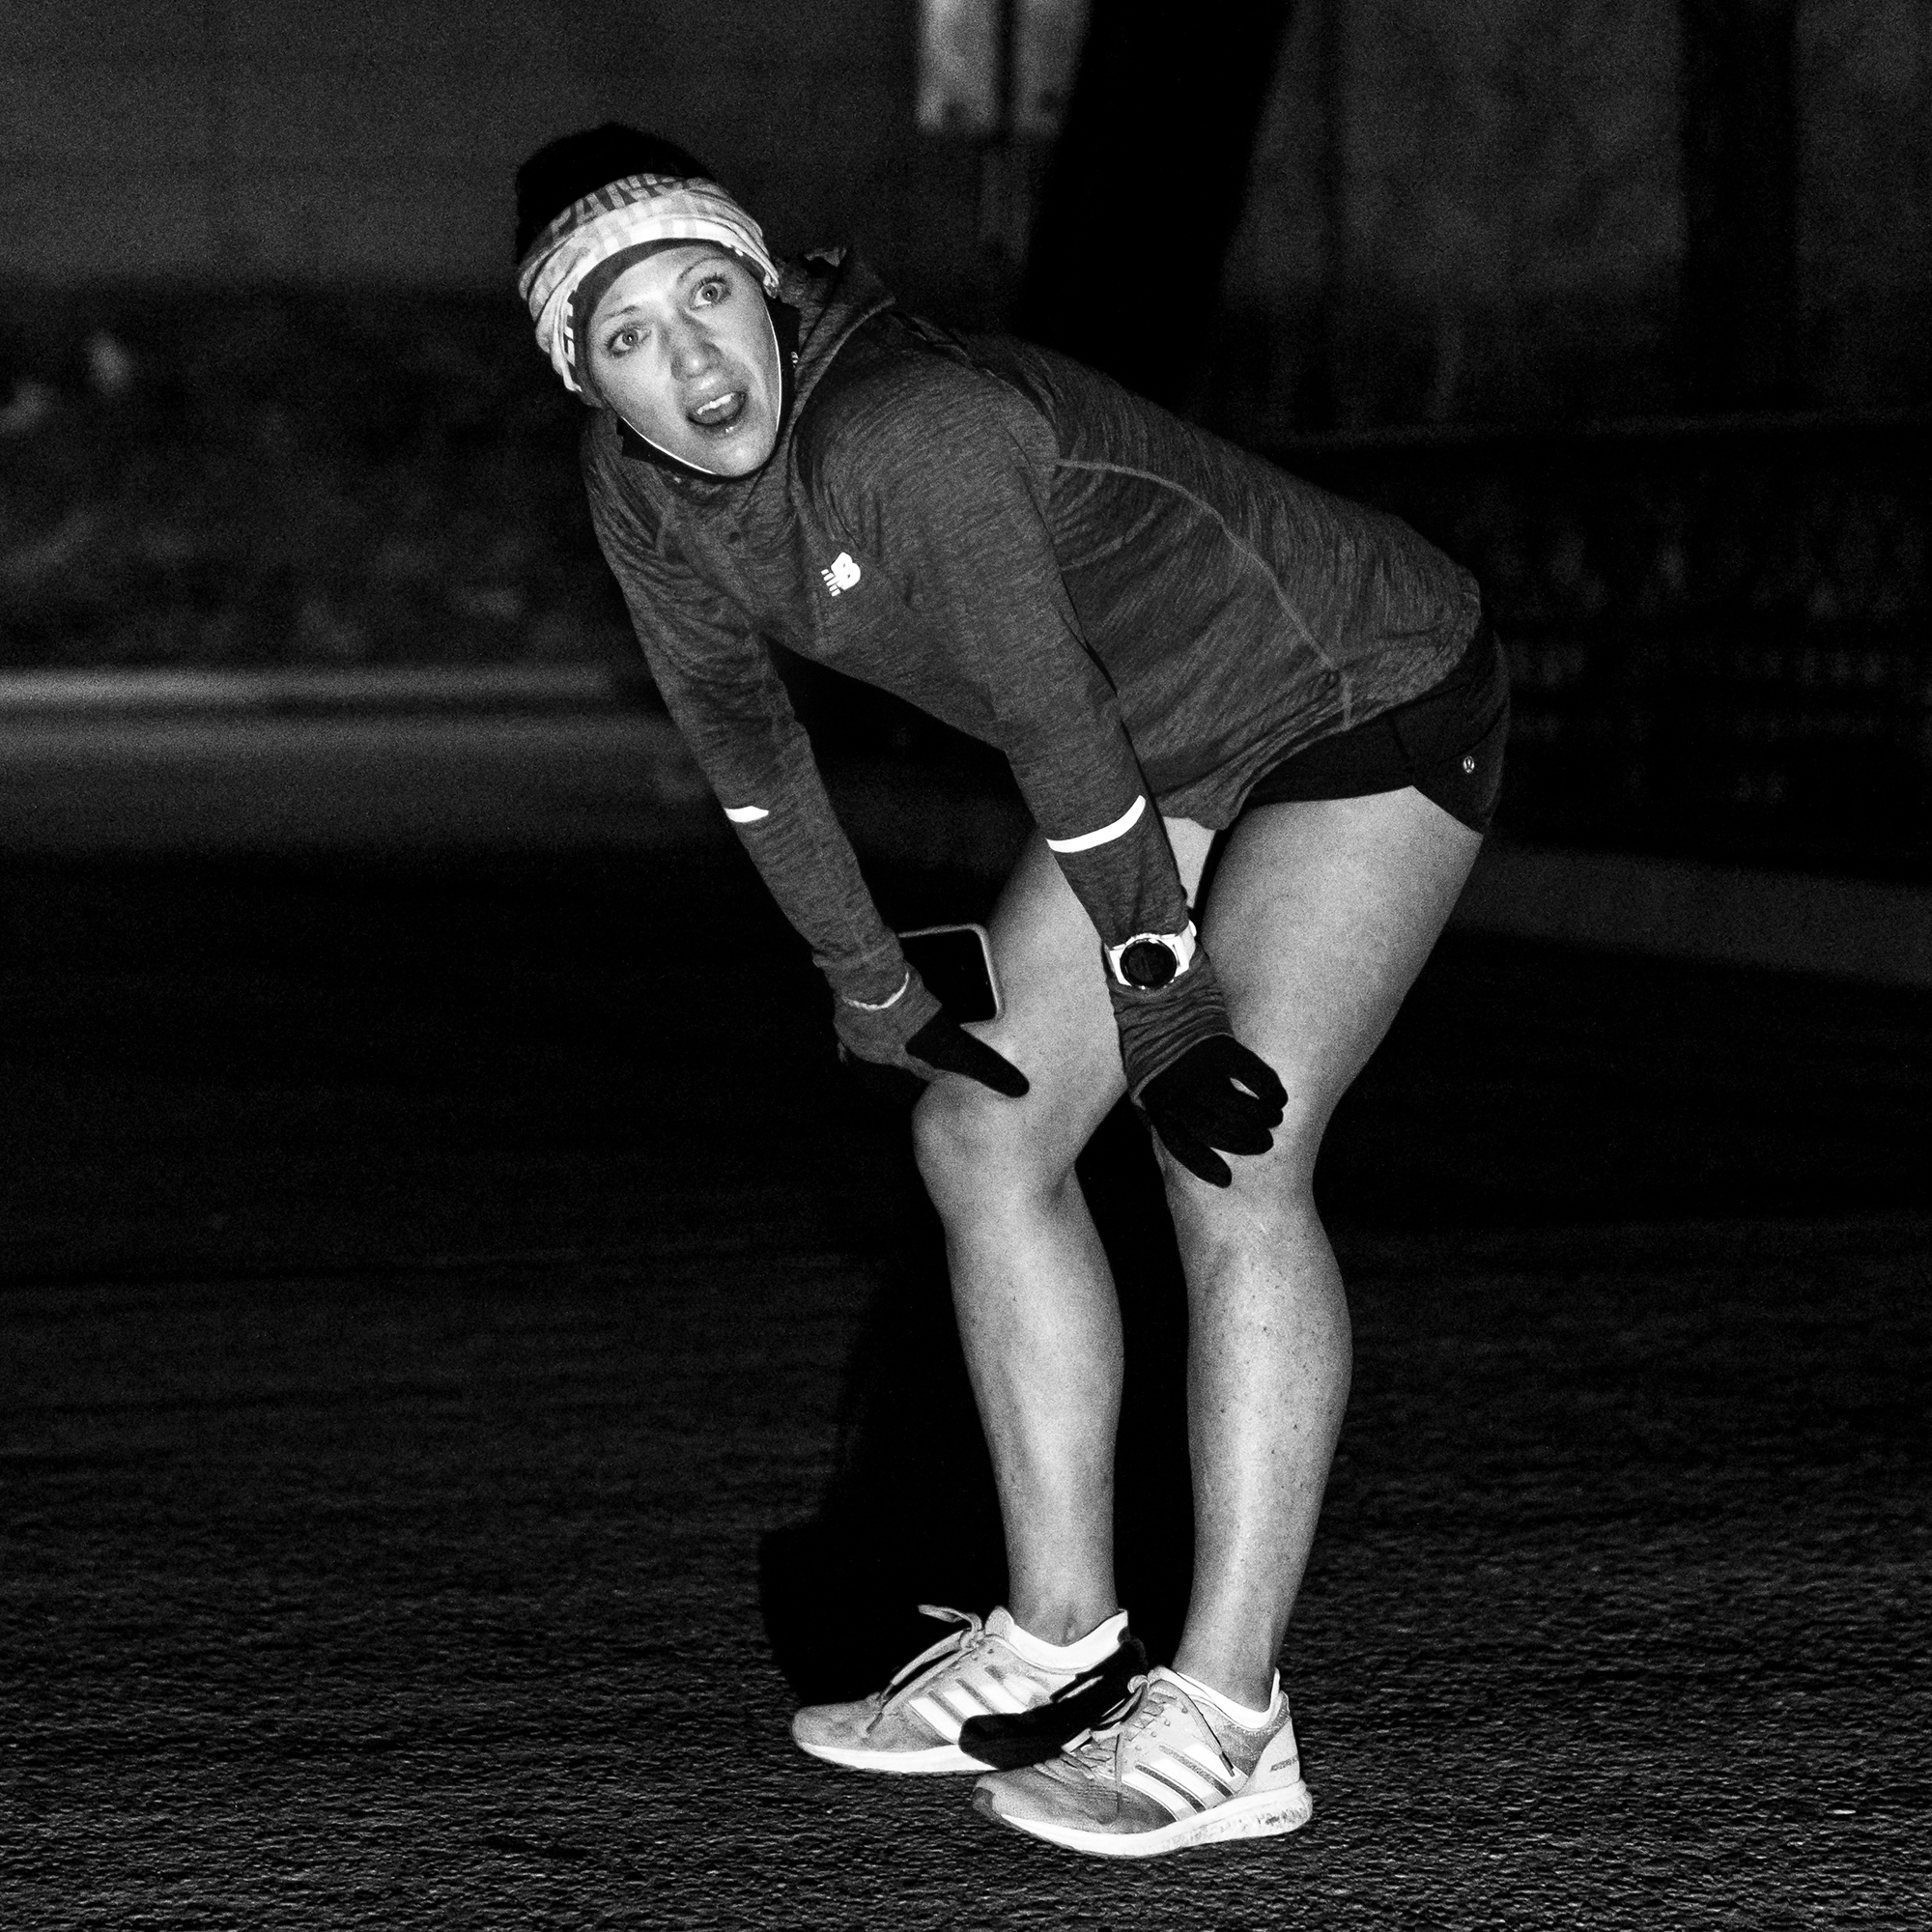 Matt trappe photographs runner bent over with hands on her knees looking completely out of breath and yet alert and full of adrenaline for Take the bridge in Denver